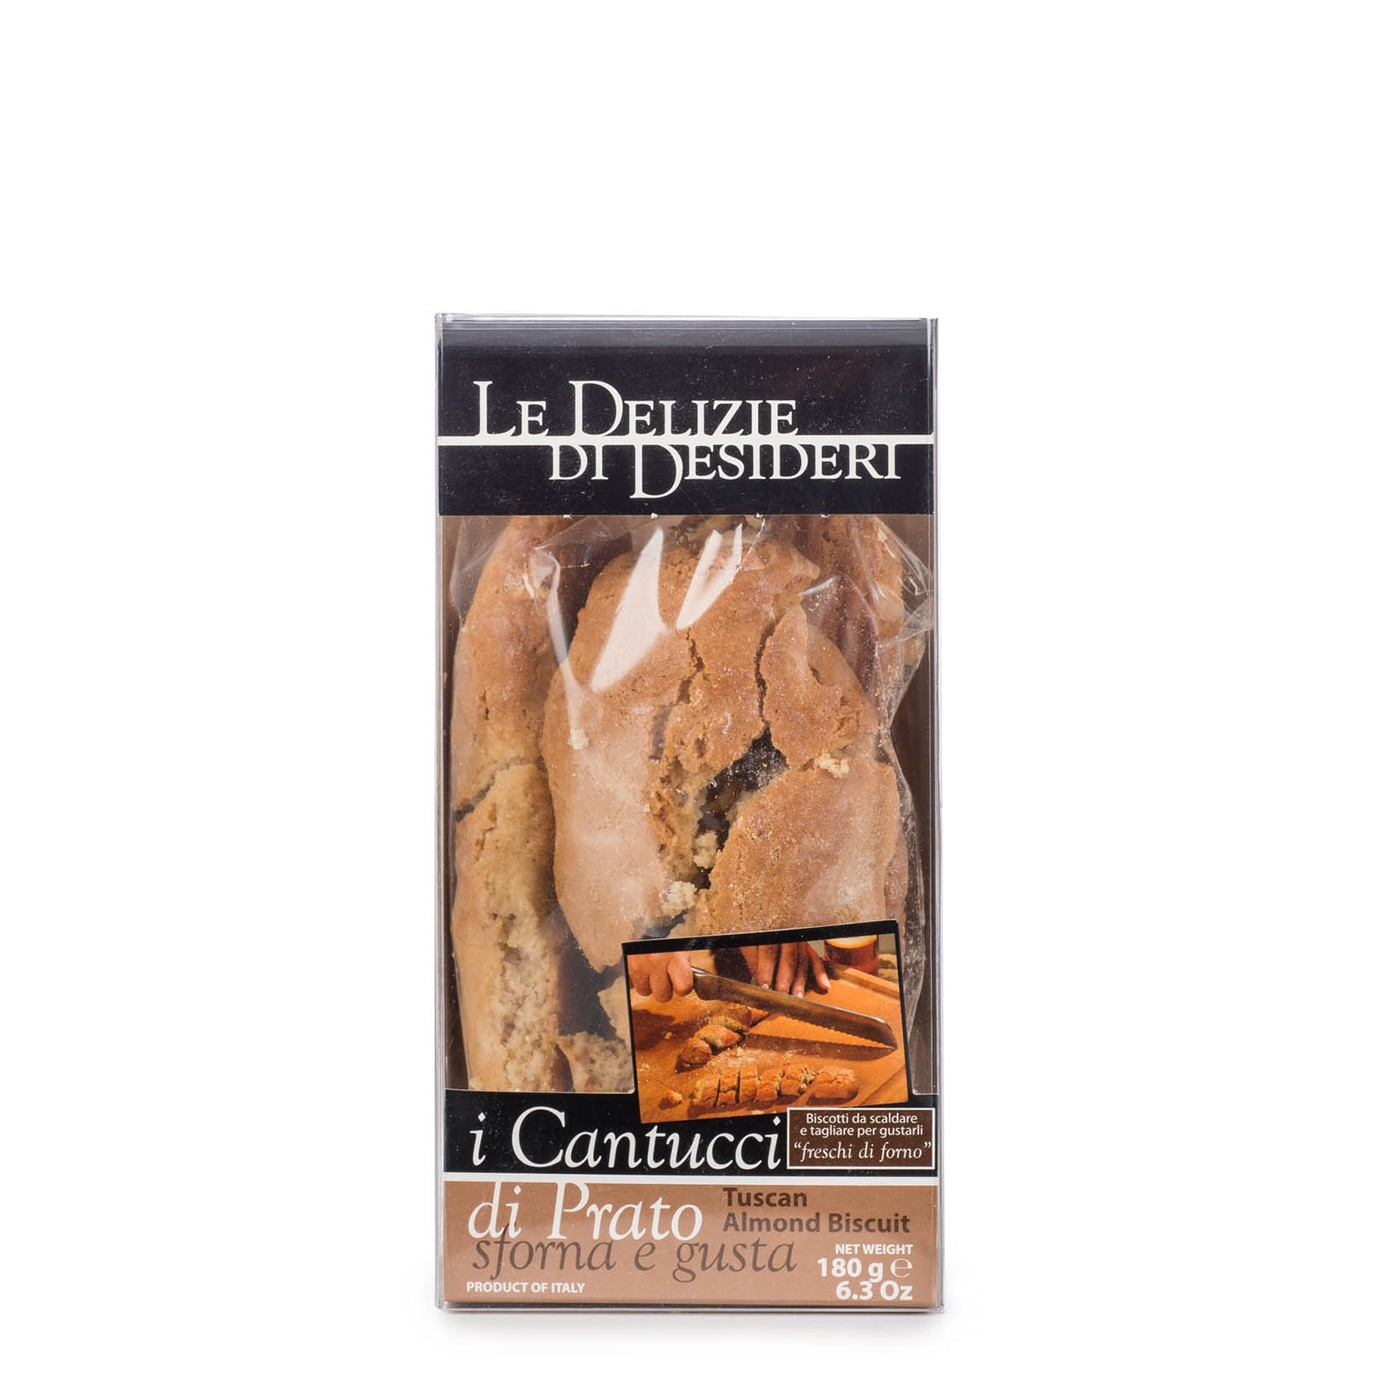 Prato Cantucci Cookies 5.6 oz